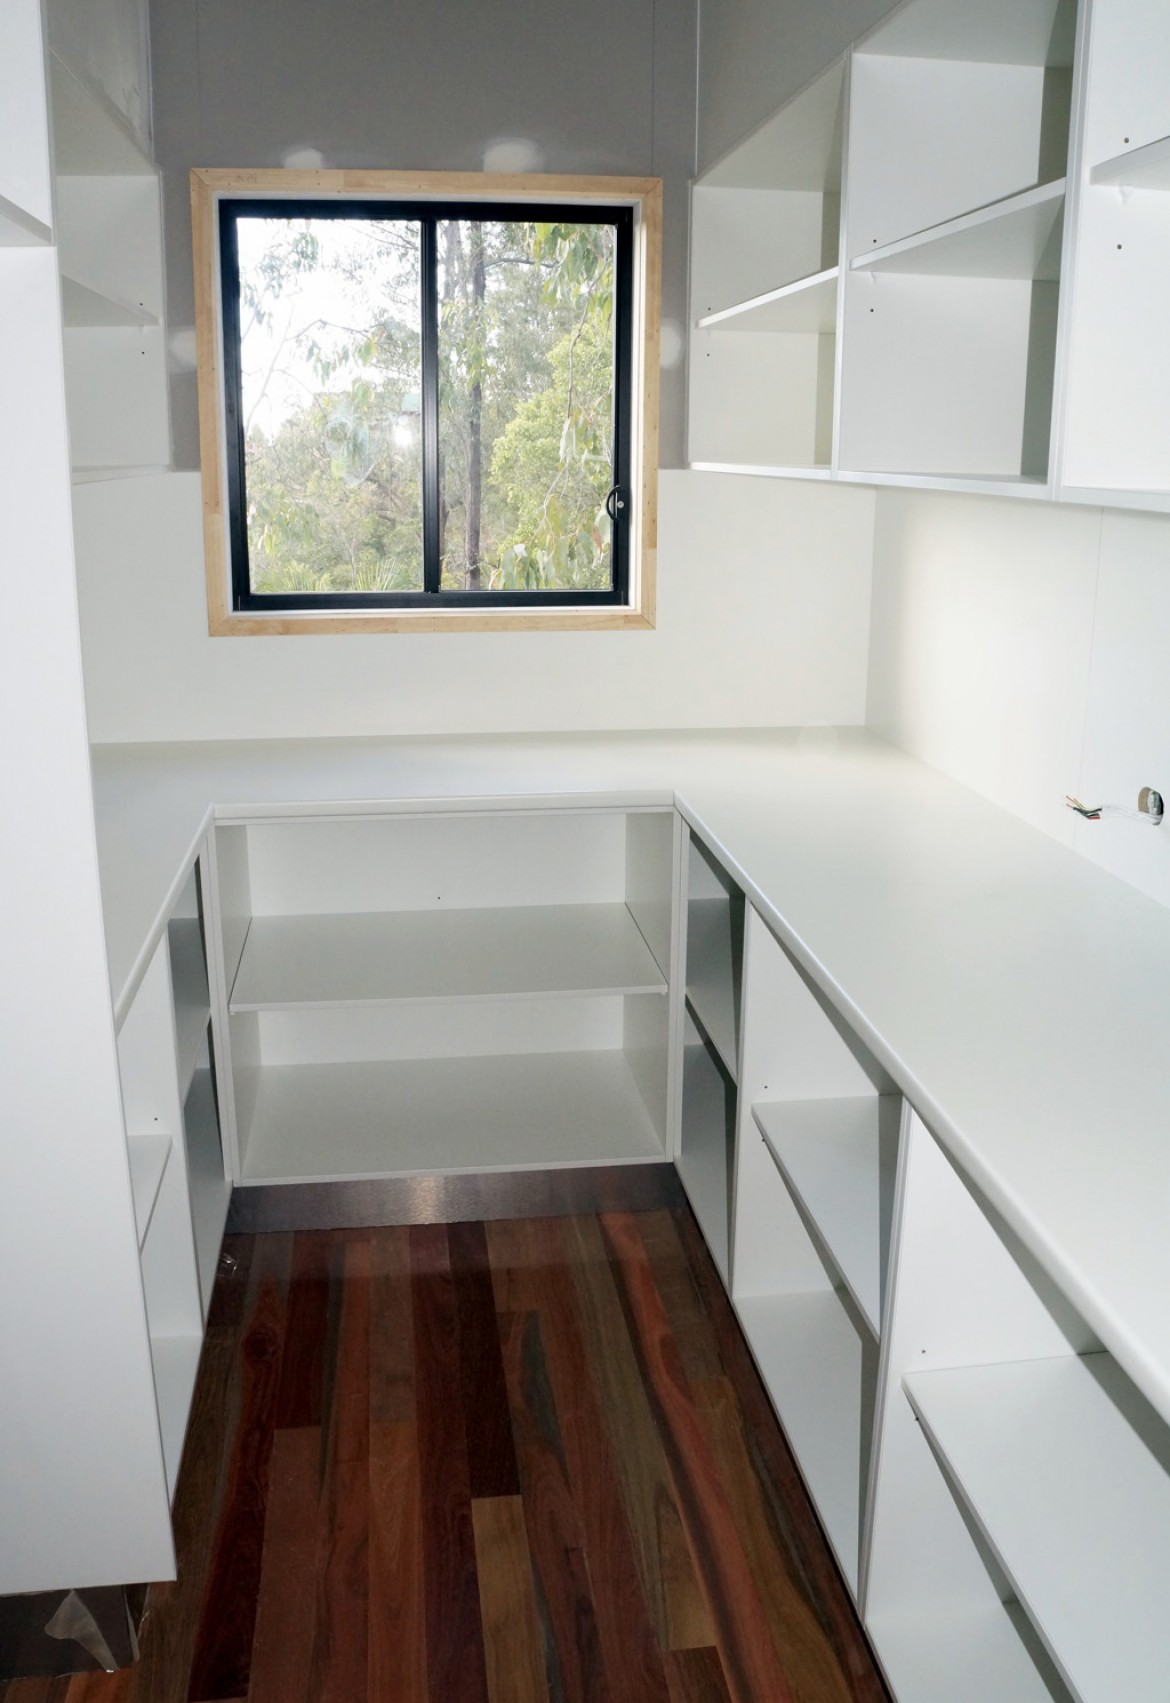 Walk In Pantry With Laminated Benchtops And White Overhead